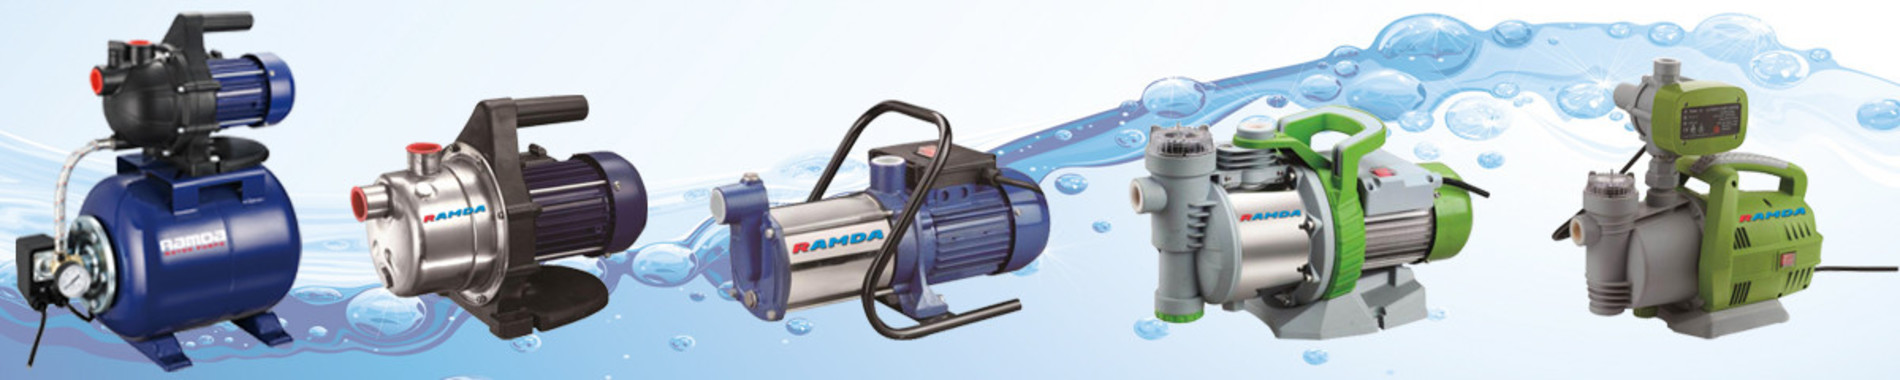 Submersible and flow water pumps, automatic pressure systems